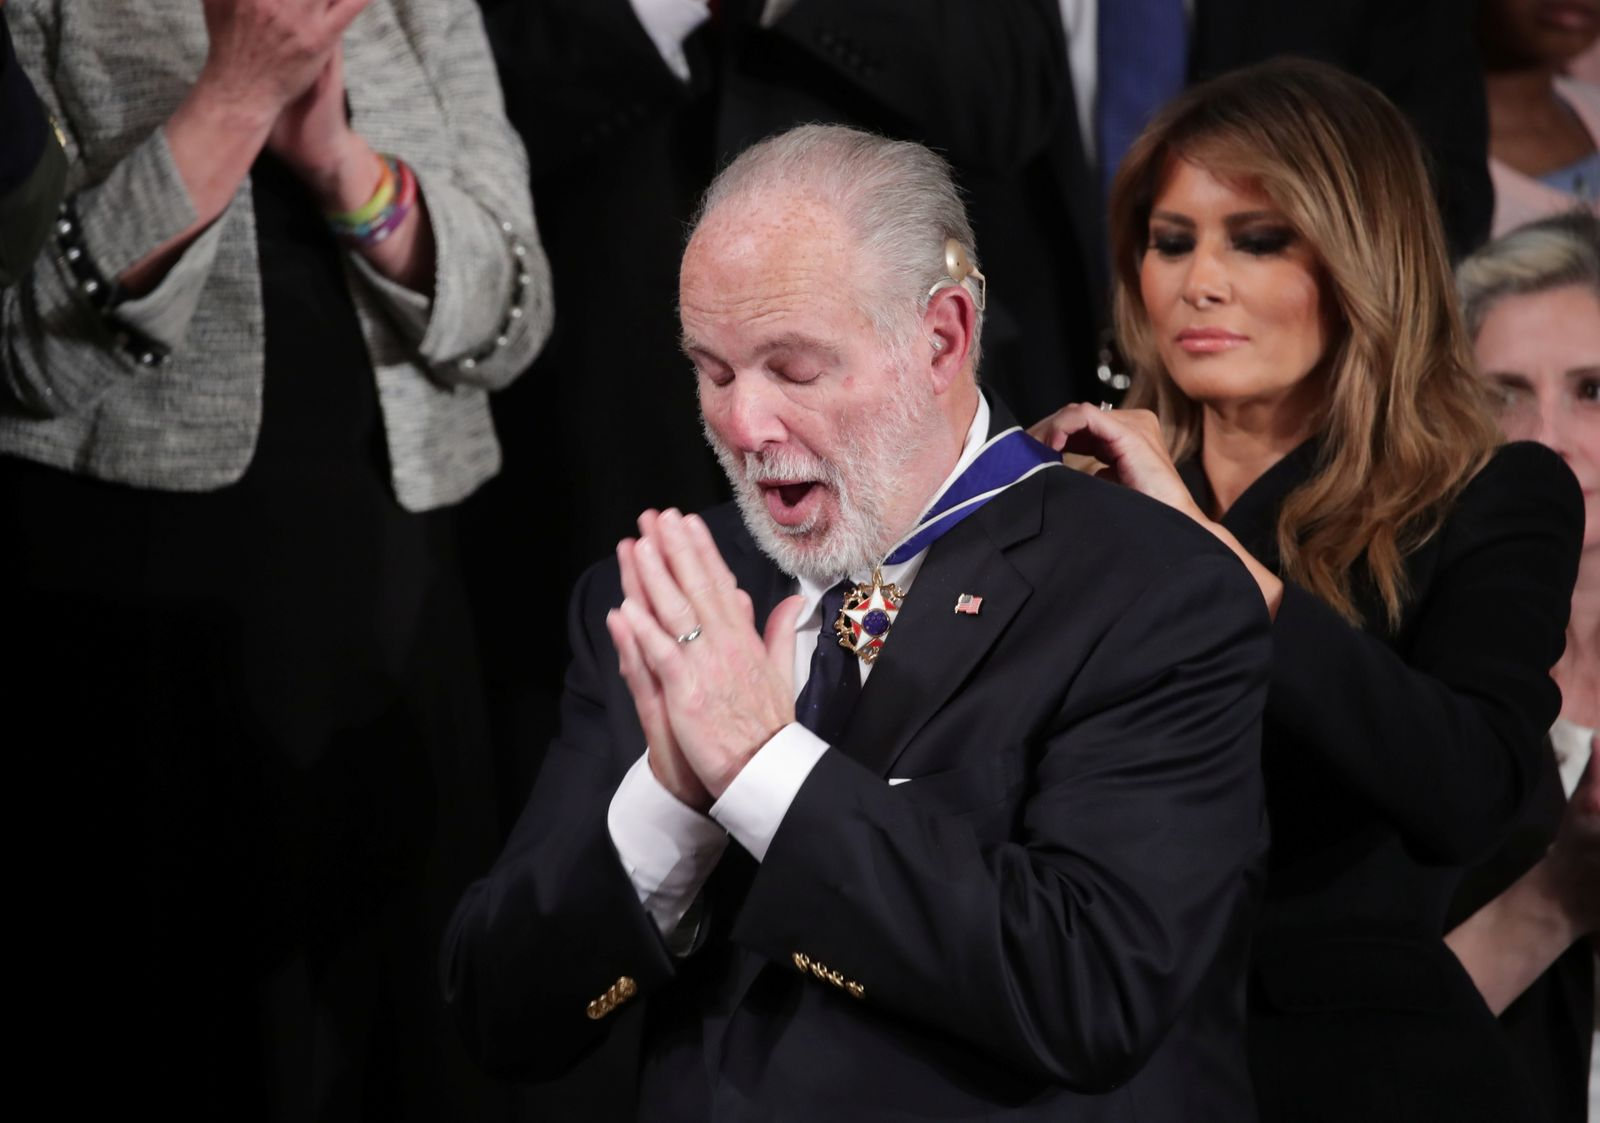 FILE PHOTO: First lady Melania Trump places Presidential Medal of Freedom to Limbaugh during U.S. President Donald Trump's State of the Union address at the U.S. Capitol in Washington